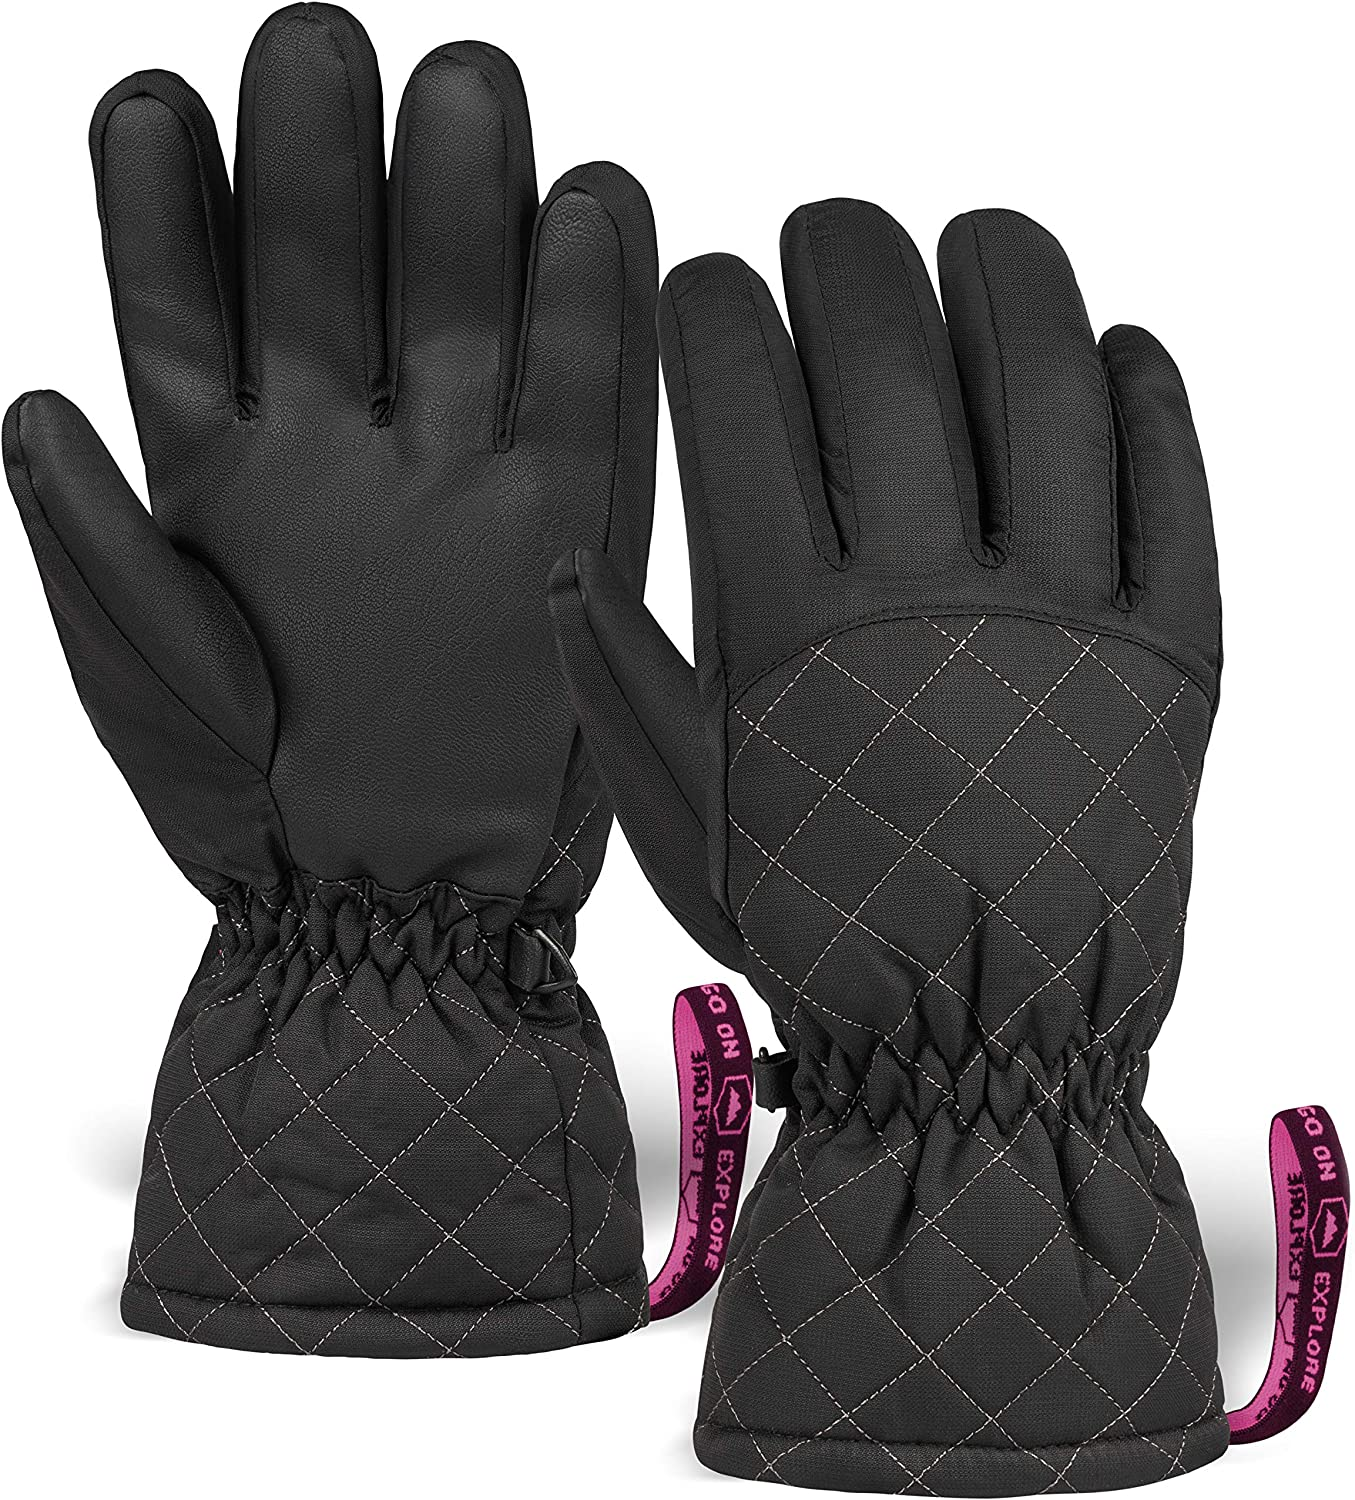 Womens Snow & Ski Gloves - Waterproof & Windproof Winter Snowboard Gloves for Cold Weather Skiing & Snowboarding - With Nylon Shell, Thermal Insulation, Synthetic Leather Palm & Wrist Straps : Clothing